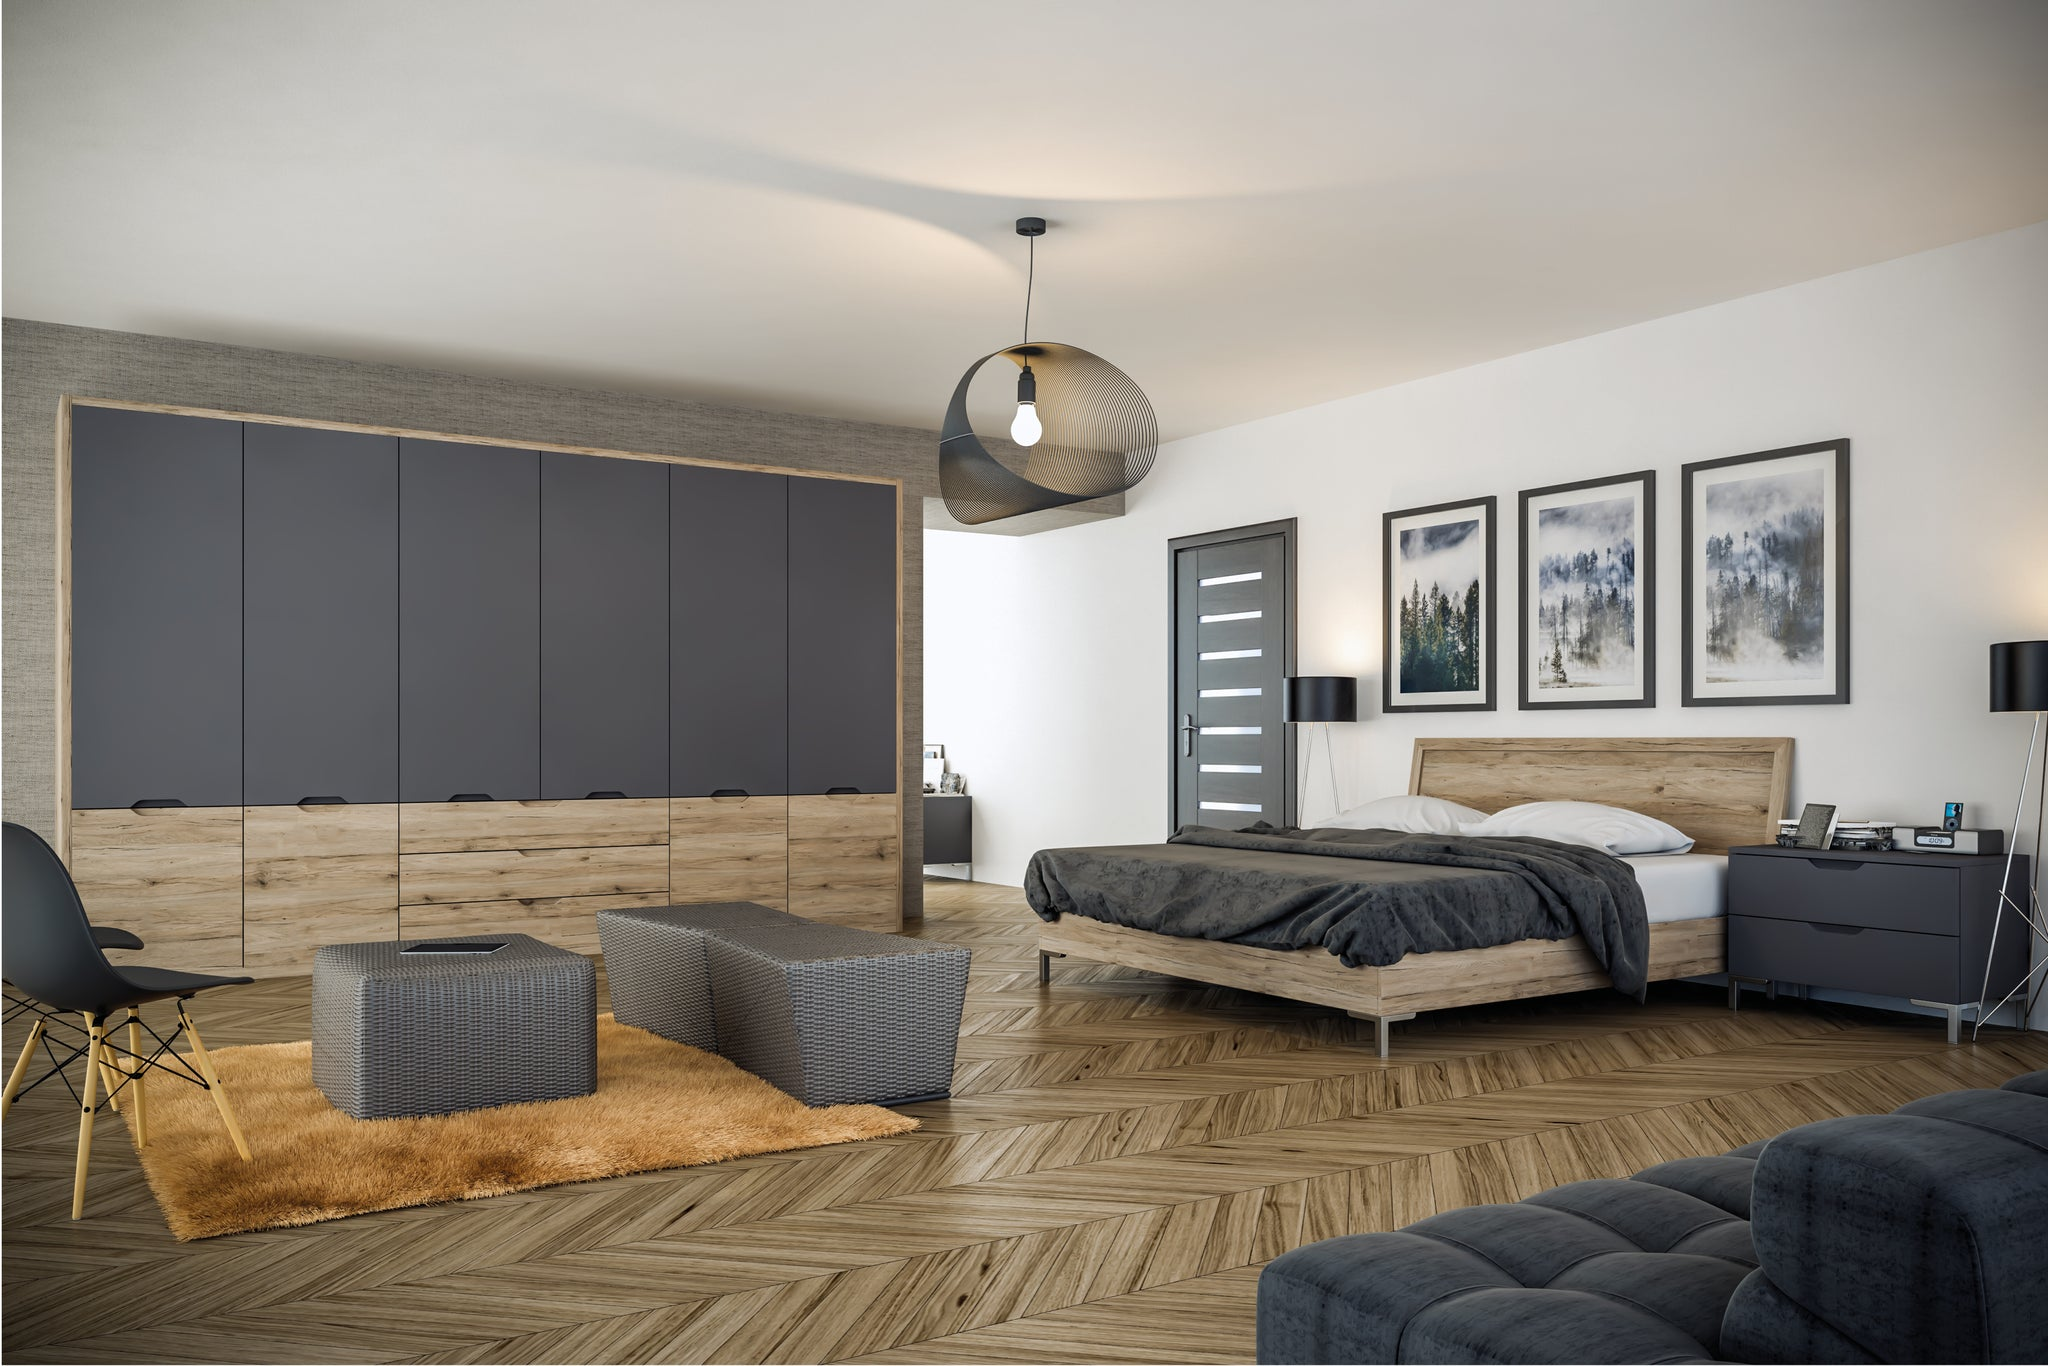 Integra wardrobes in matt graphite